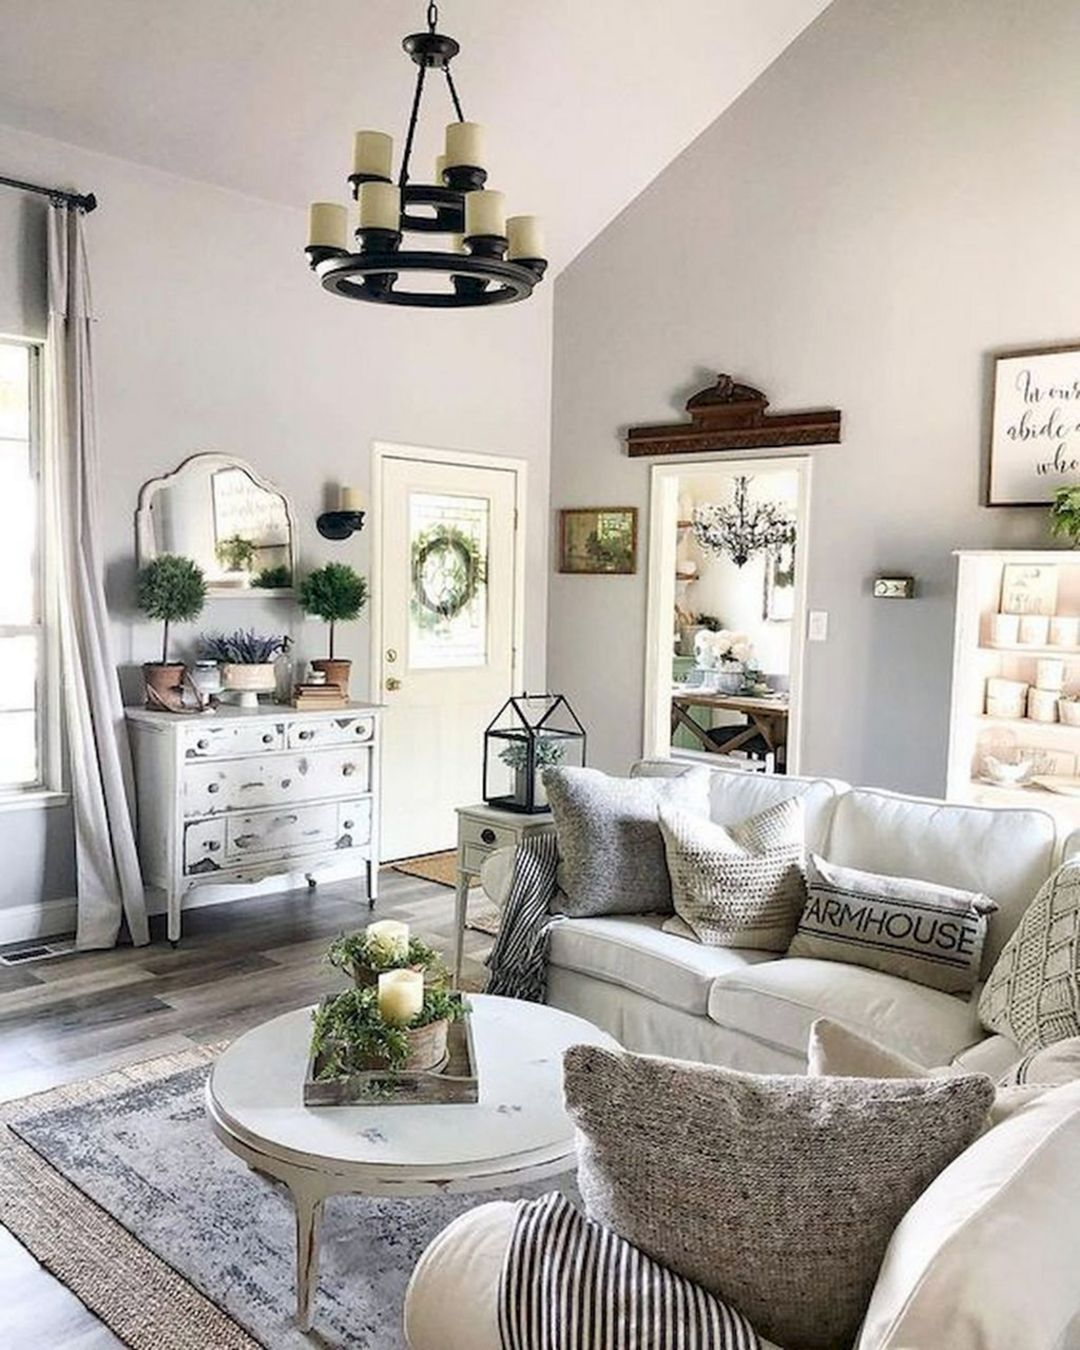 11 Comfortable Farmhouse Living Room Decoration Ideas To Amaze Your Guests Garden